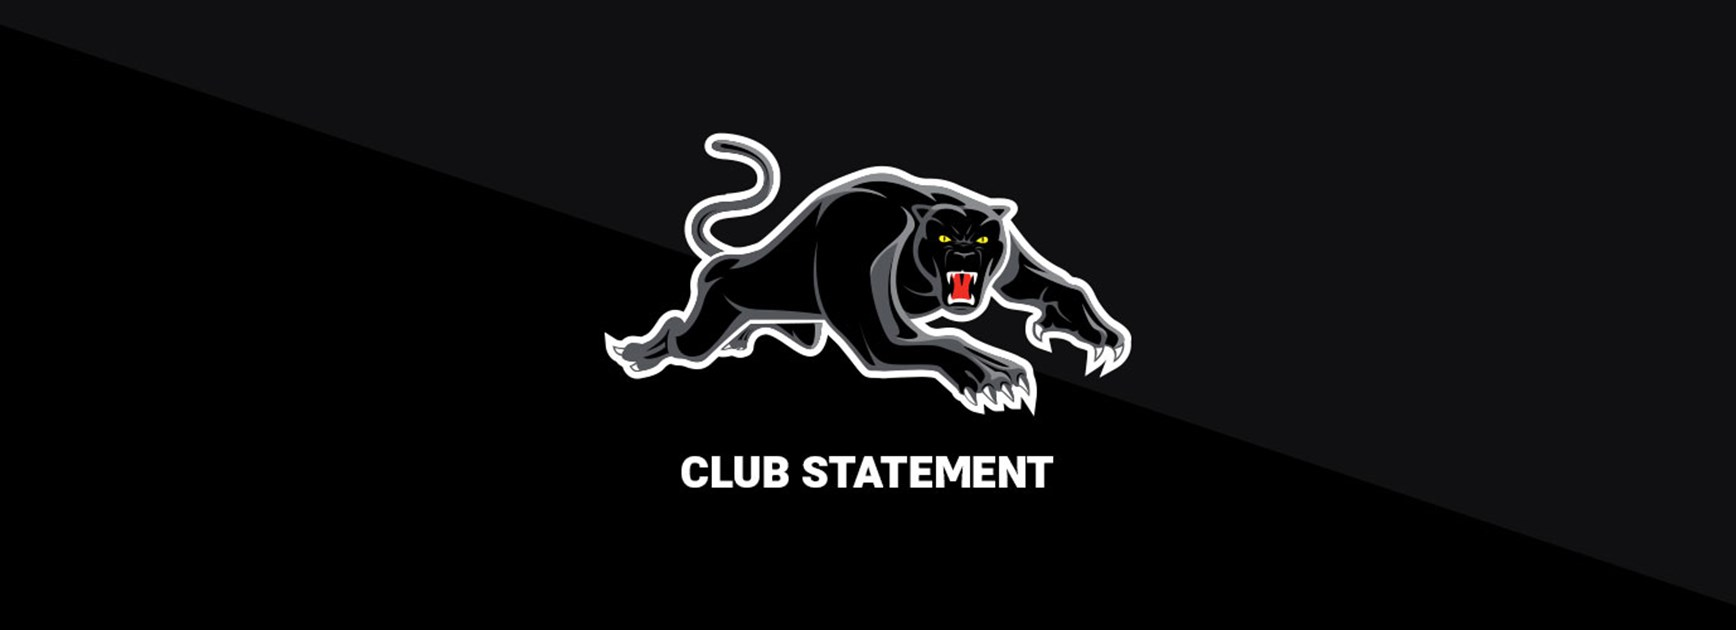 Club Statement - Nathan Cleary